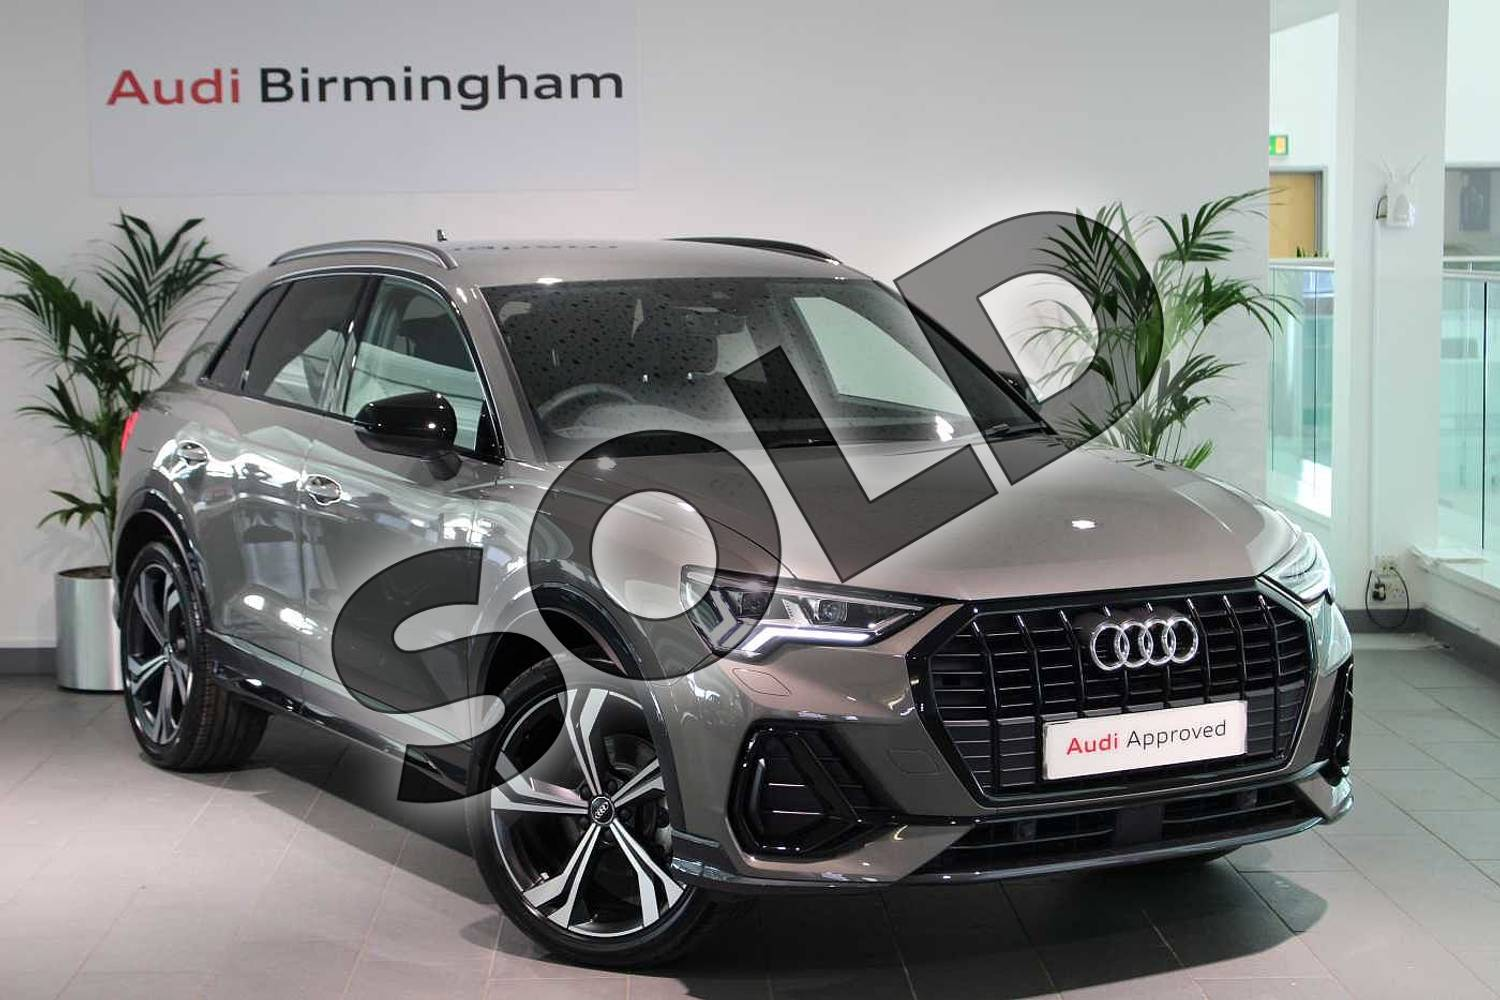 Audi Q3 Sportback Special Editions 35 Tfsi Edition 1 5dr Chronos Grey Metallic With Black Rock Gray Interior